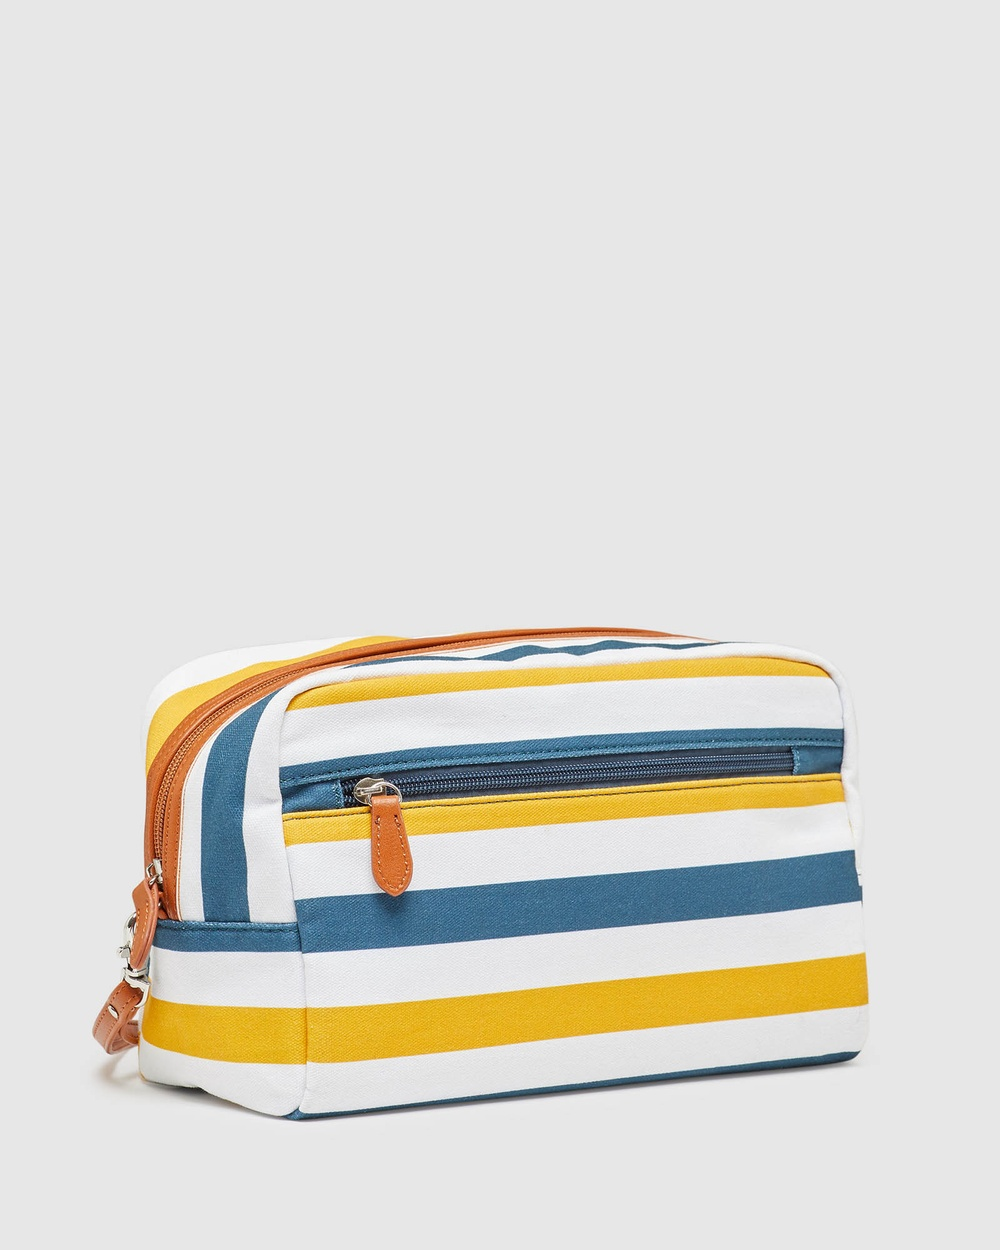 Oxford Alvin Washbag Toiletry Bags Blue